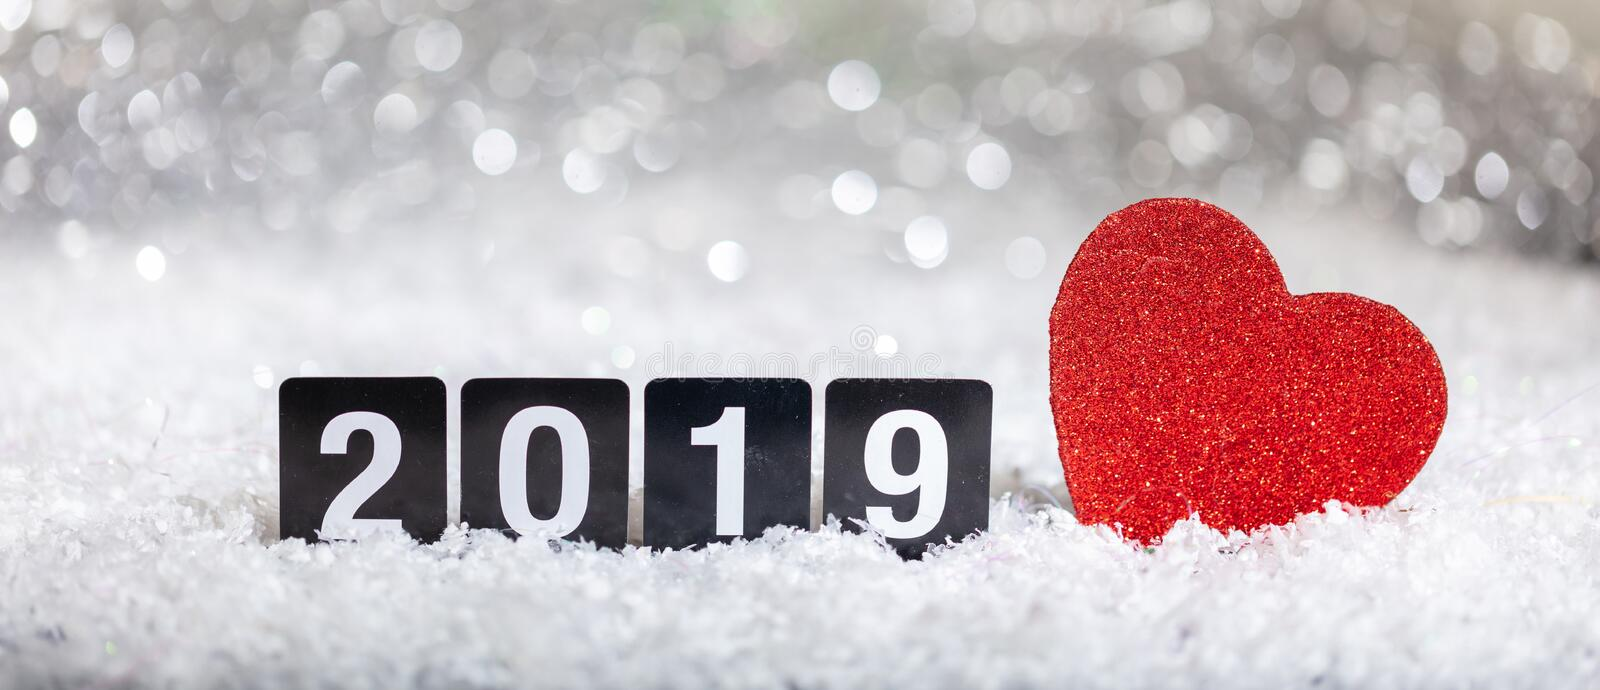 New year 2019 and a red heart on snow, abstract bokeh lights. Background royalty free stock image